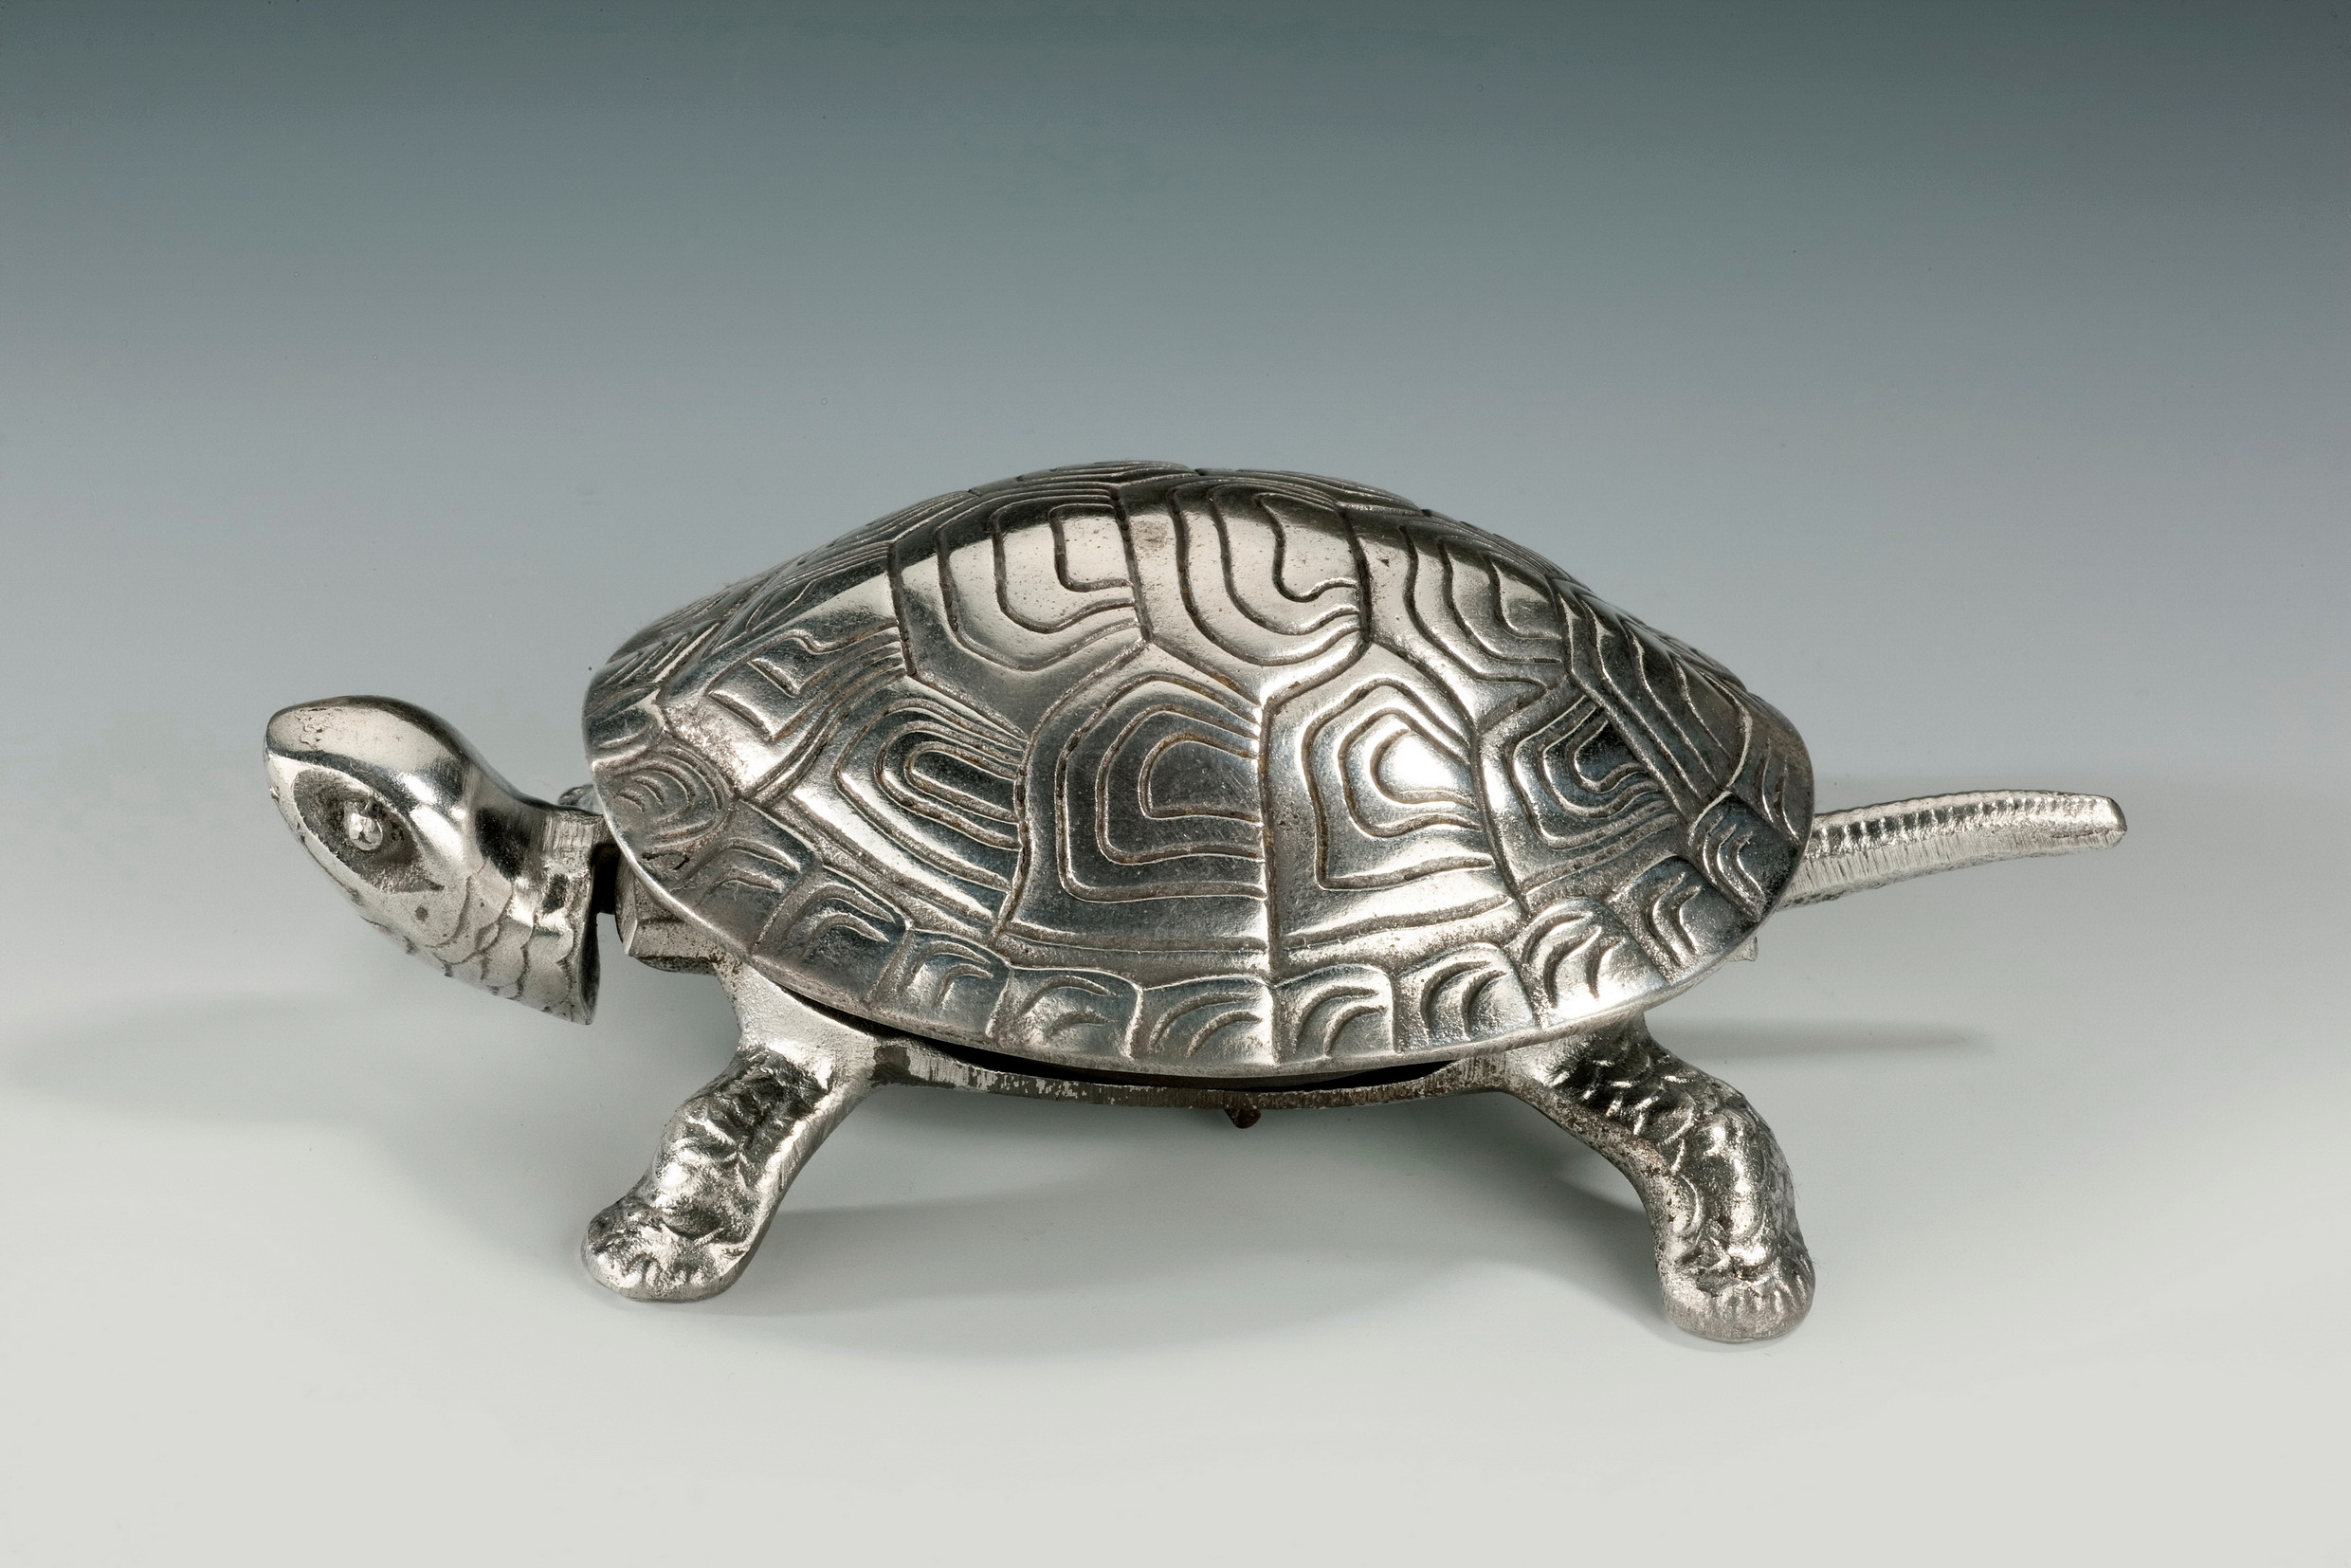 Antique silver plated tortoise table bell richard gardner antiques antique silver plated tortoise table bell solutioingenieria Choice Image